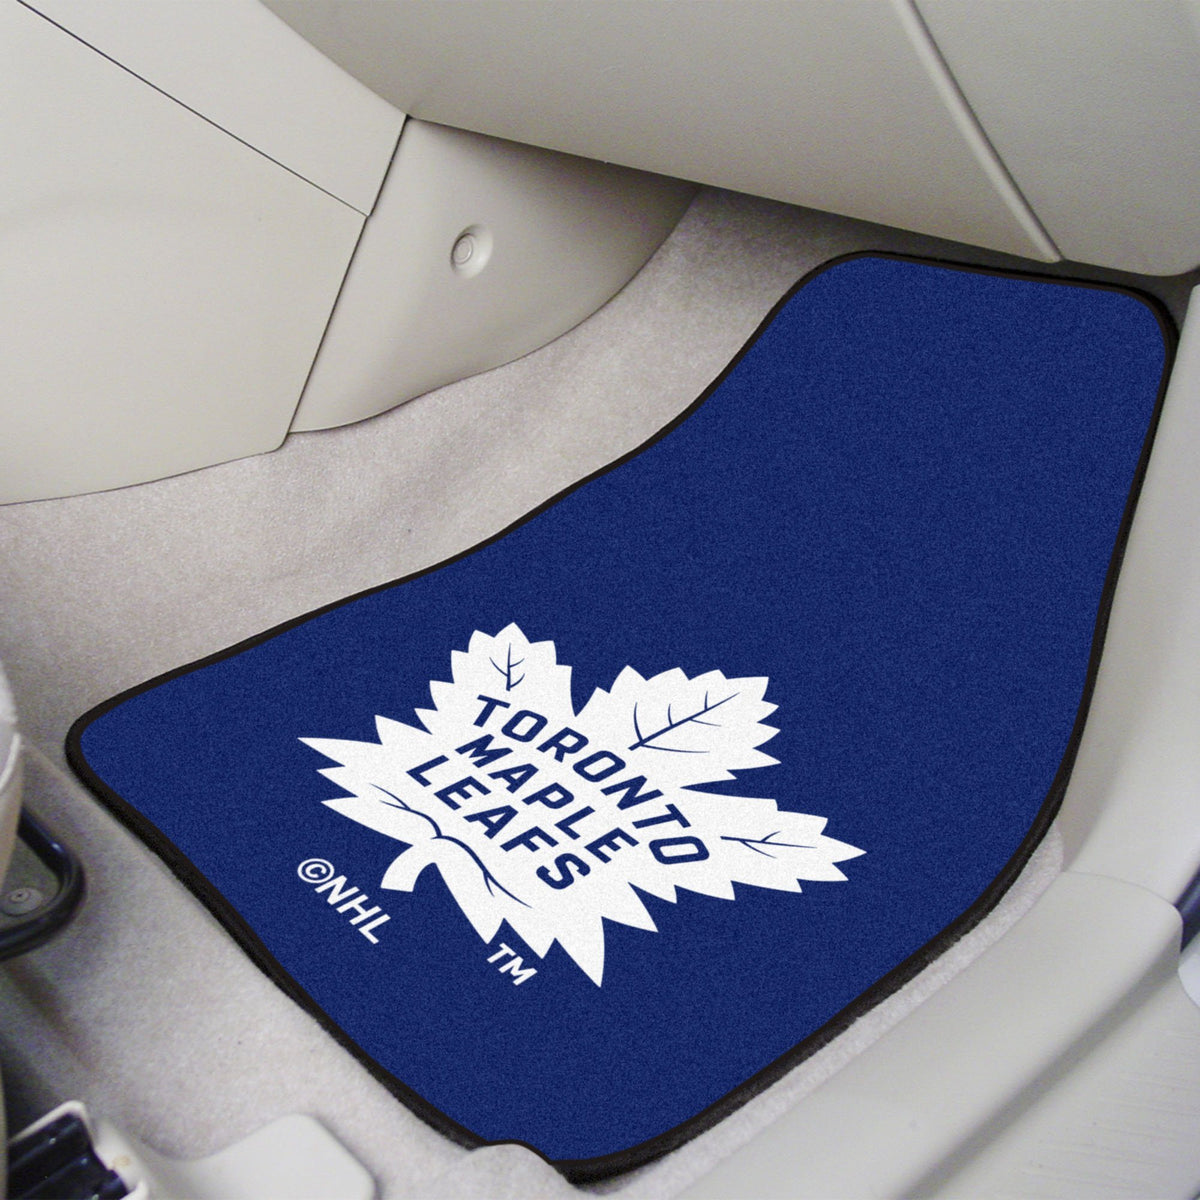 NHL - Carpet Car Mat, 2-Piece Set NHL Mats, Front Car Mats, 2-pc Carpet Car Mat Set, NHL, Auto Fan Mats Toronto Maple Leafs